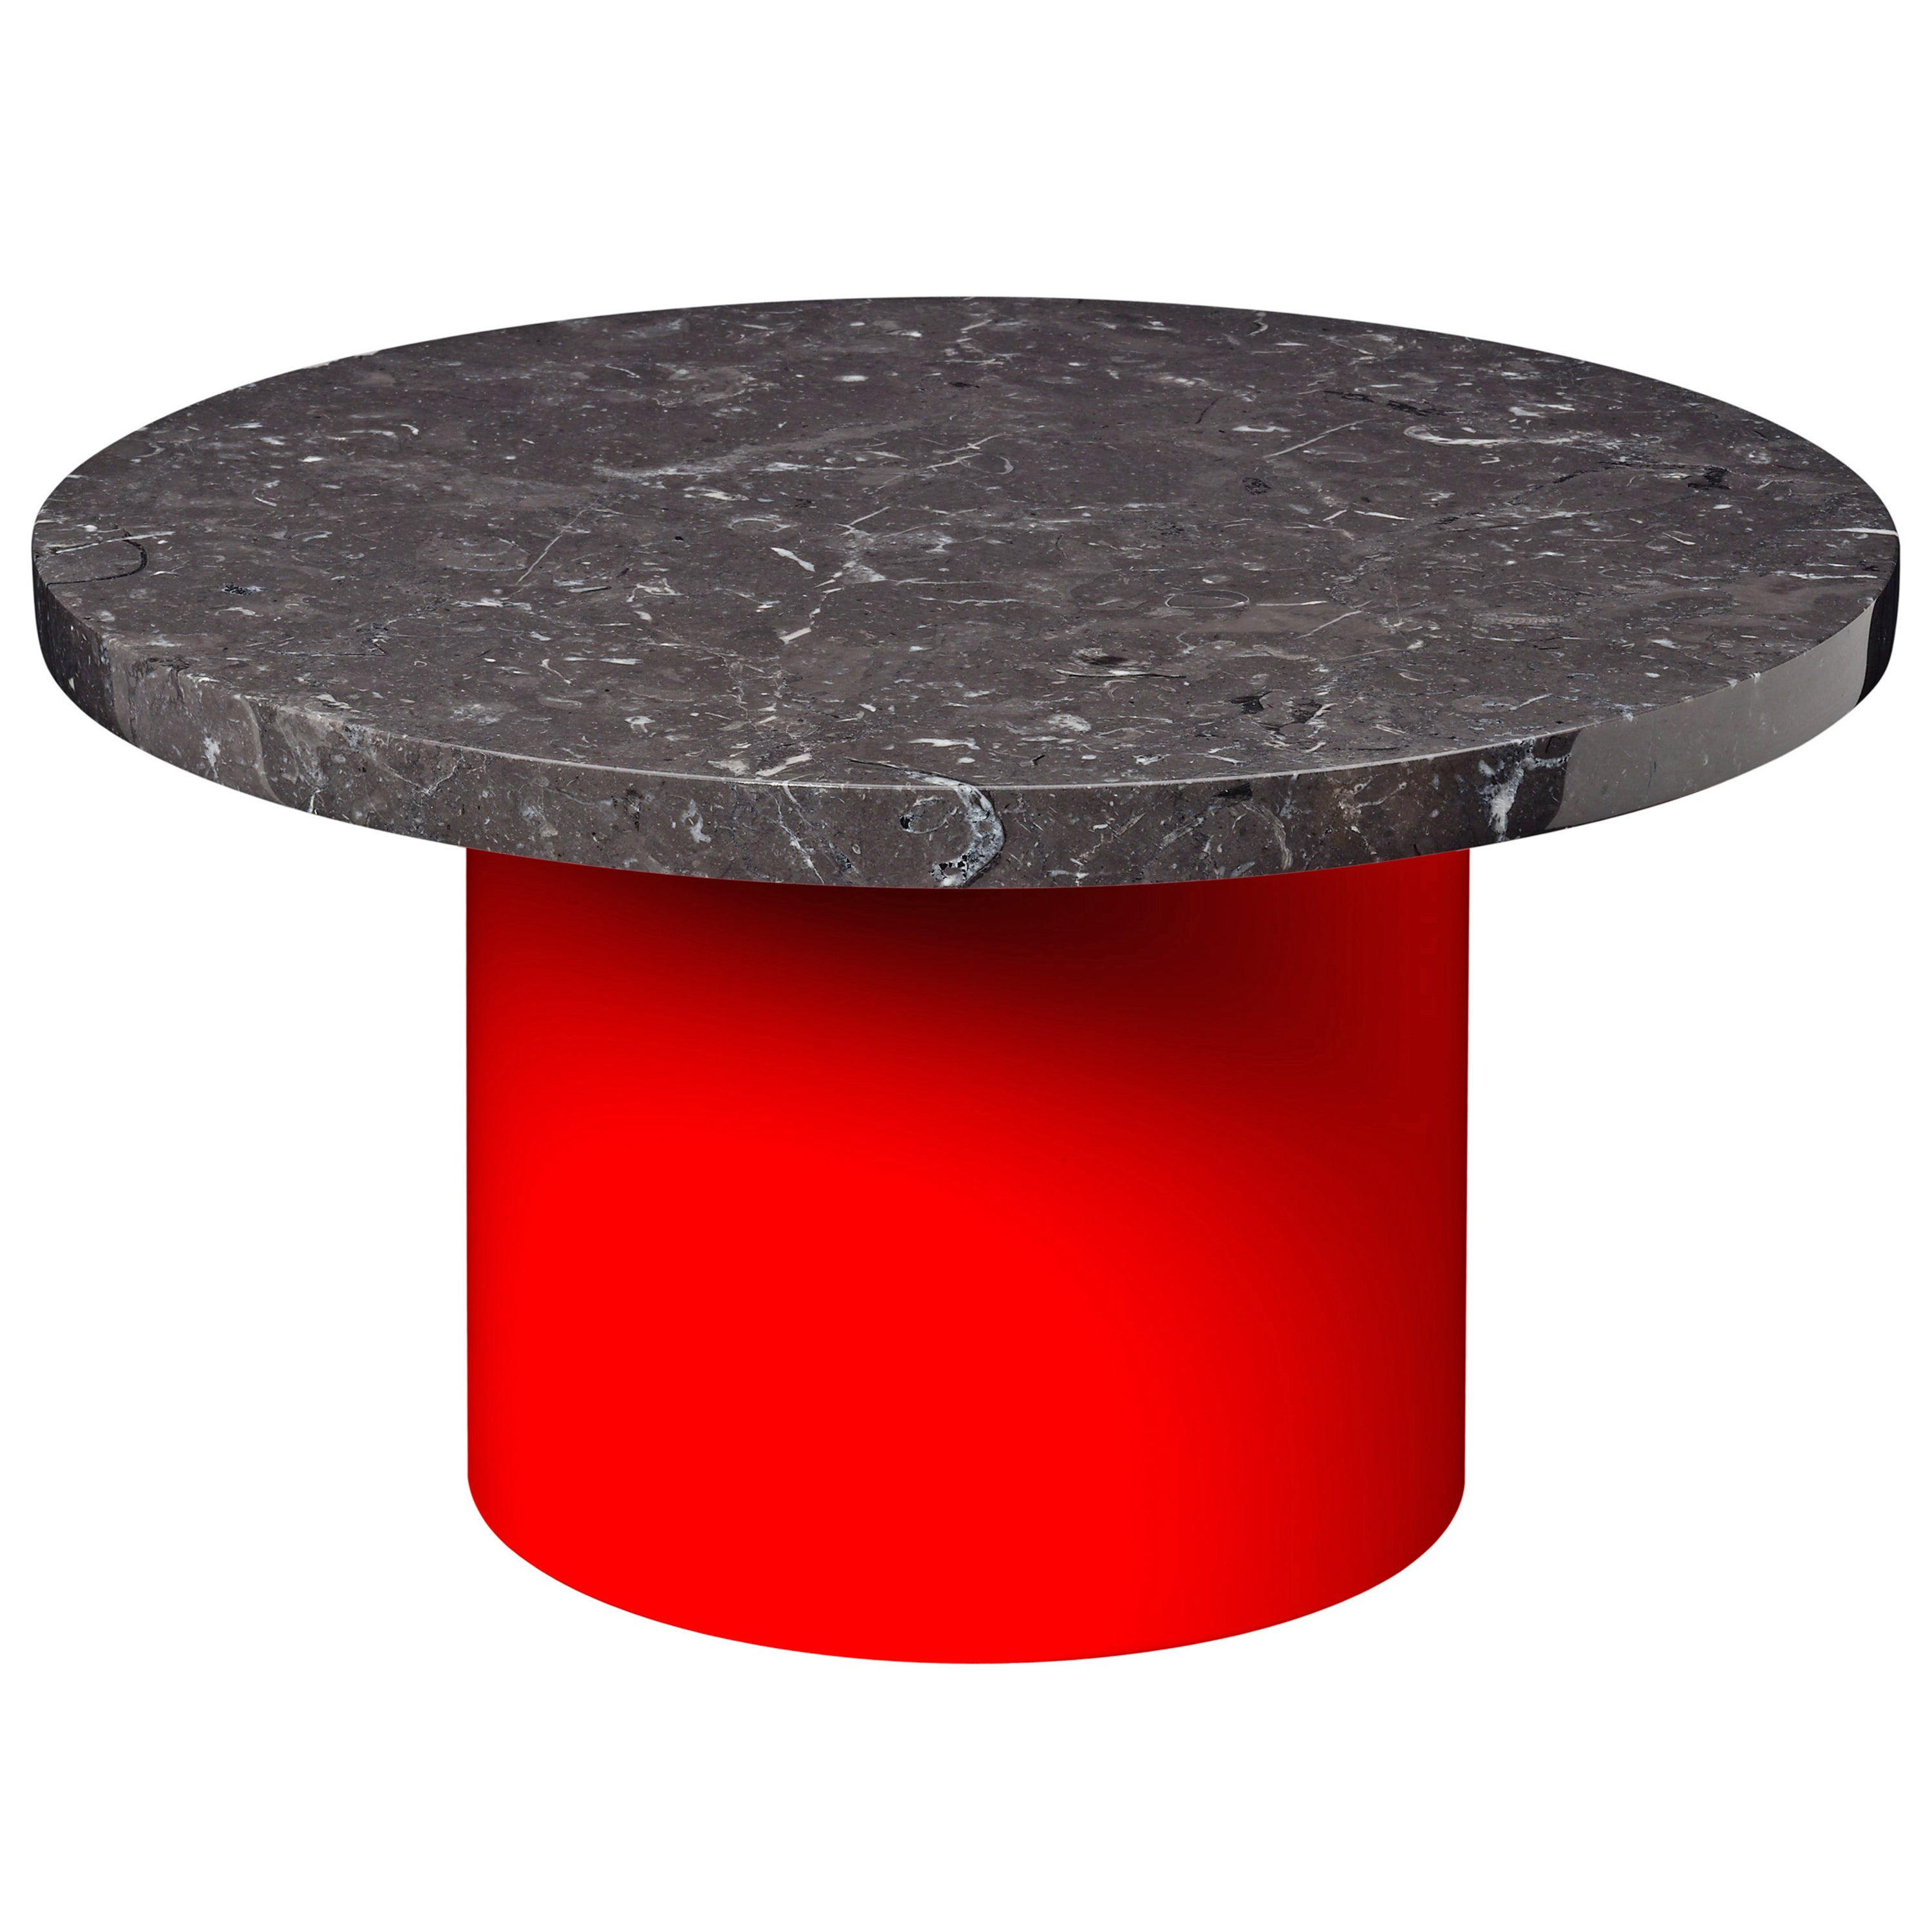 e15 Enoki Side Table with Neon Red Base by Philipp Mainzer